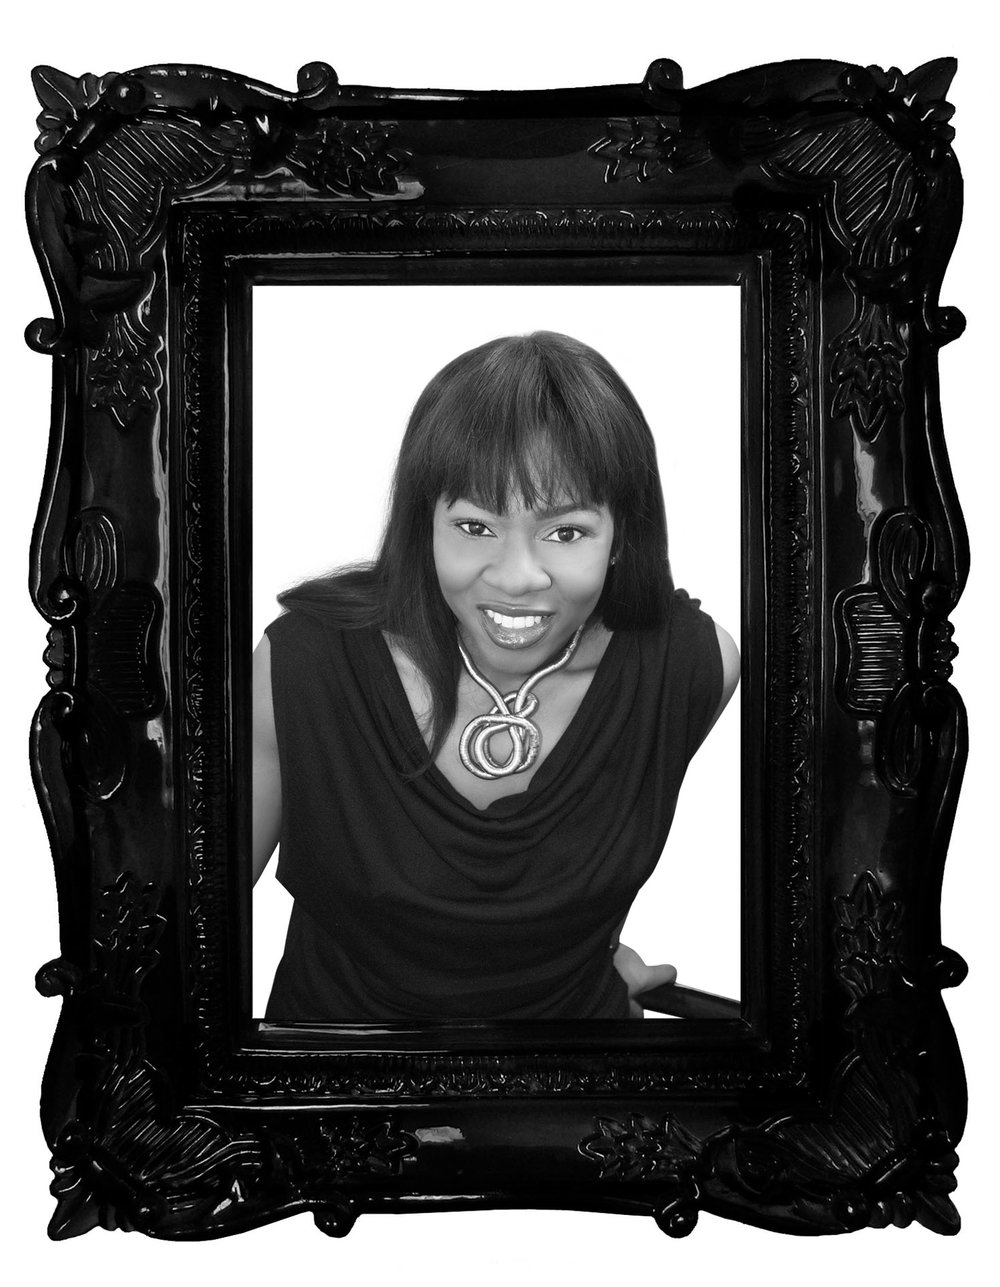 Rashida B. Hey Daughter Founder